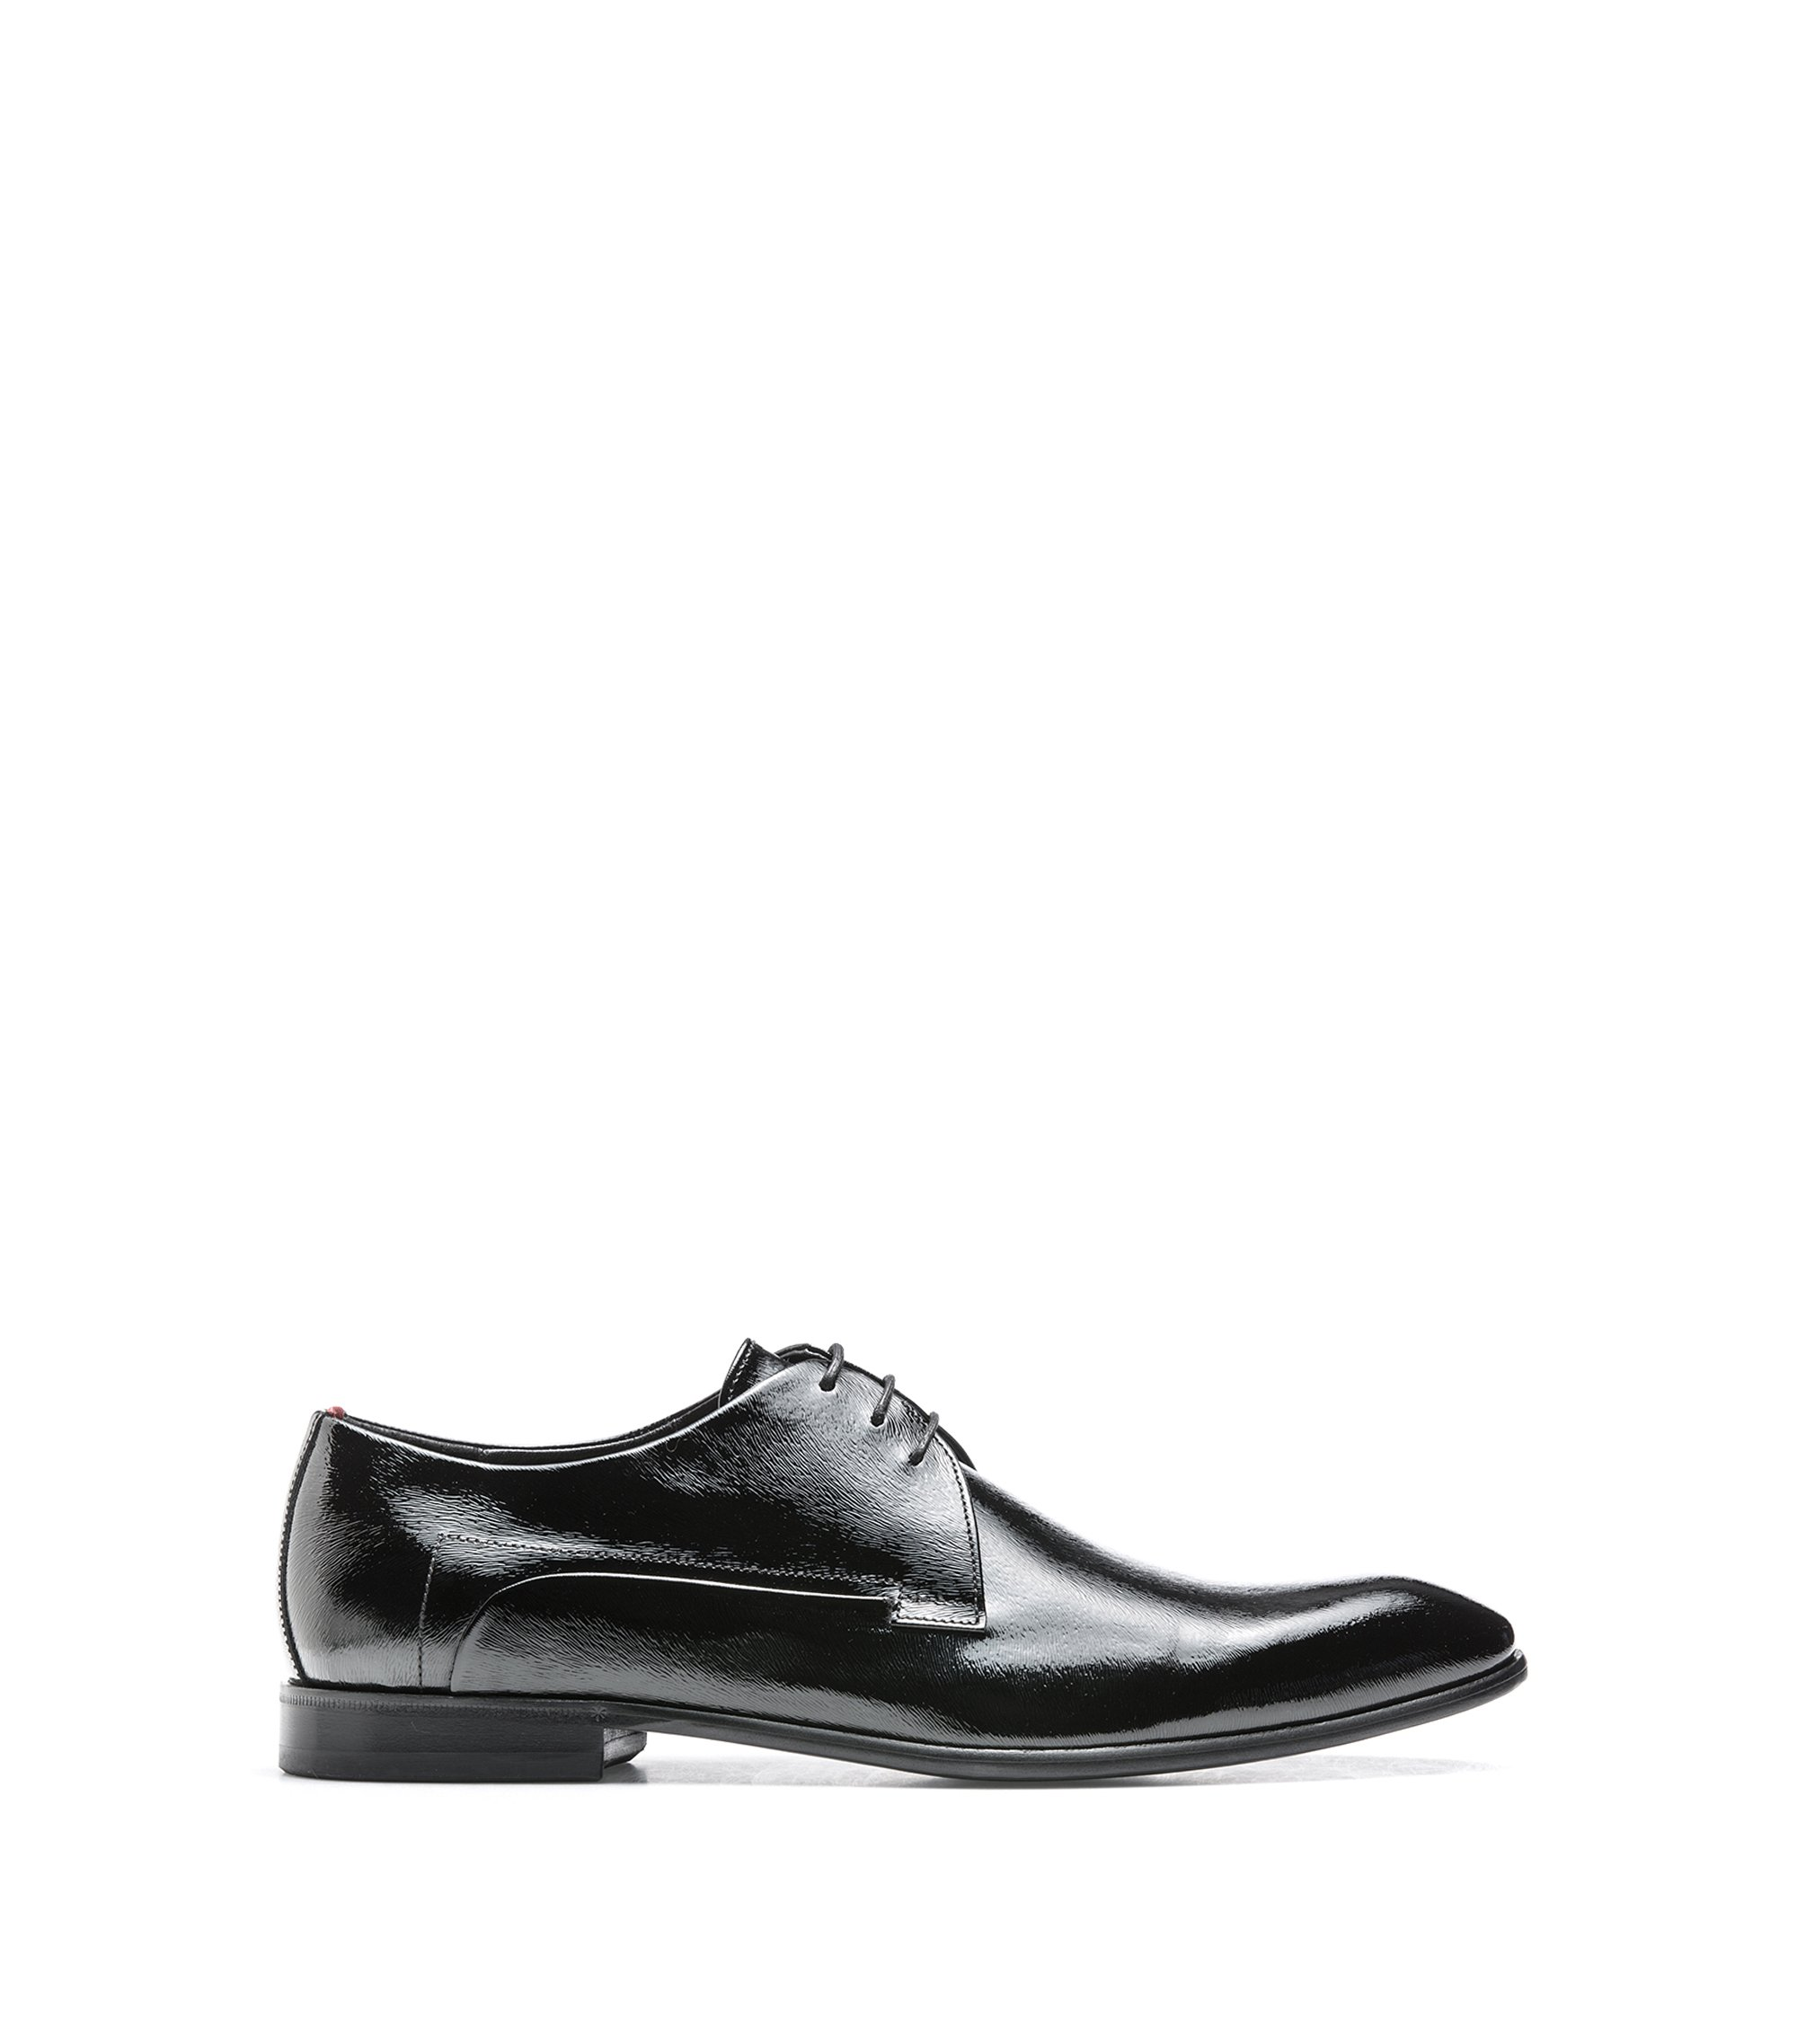 Leather-soled Derby shoes in pony-print patent leather, Black